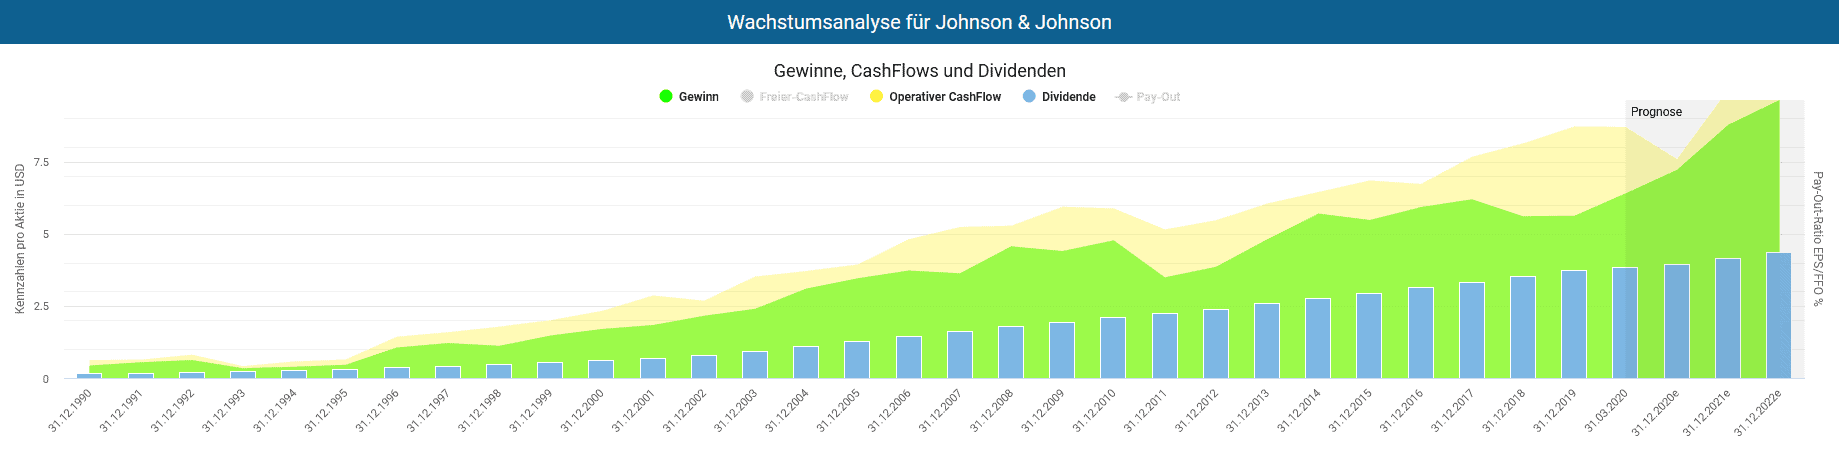 Johnson Und Johnson Aktie